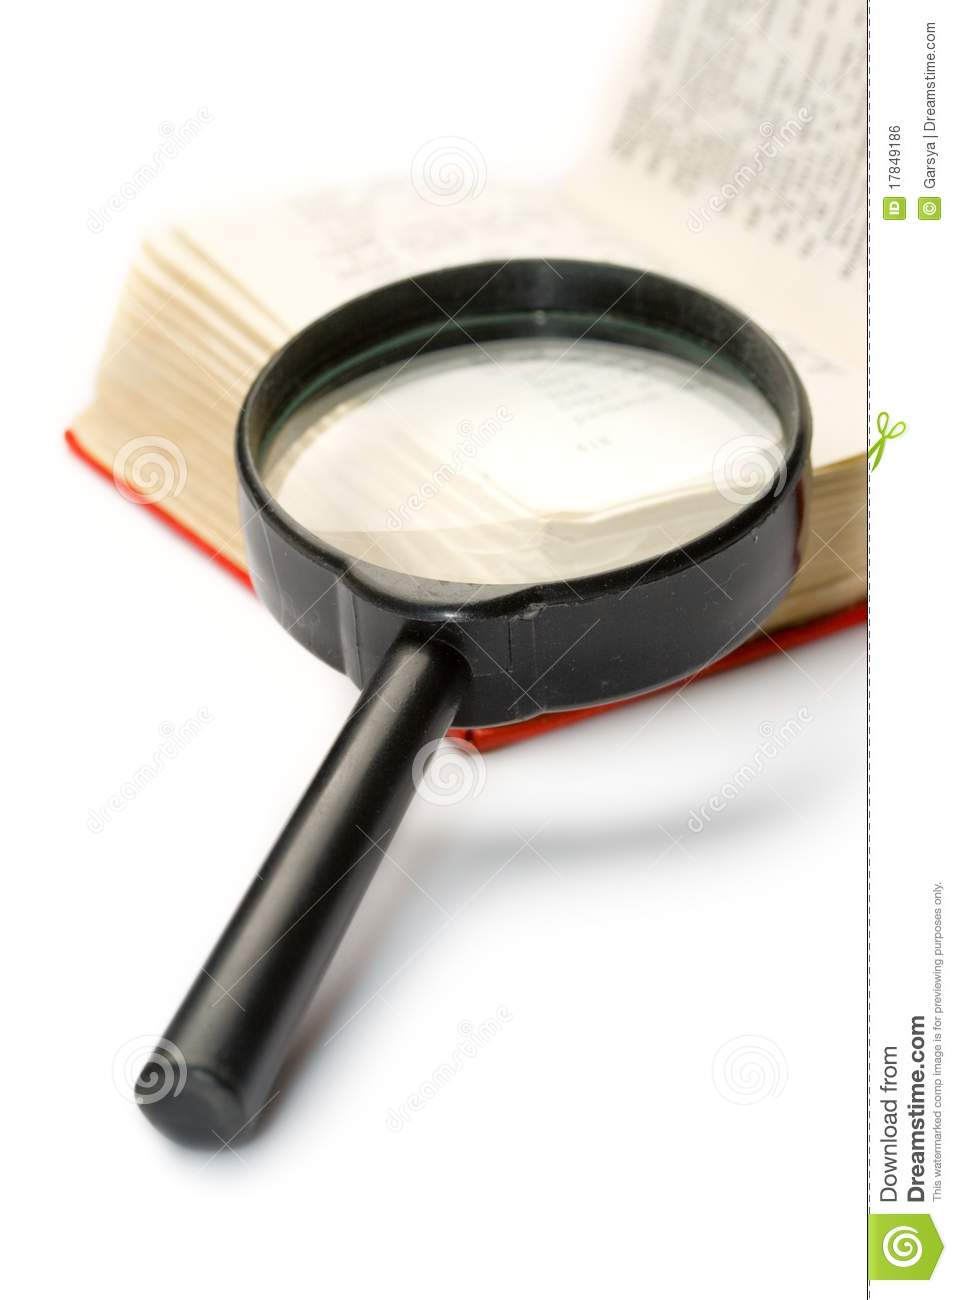 magnifying glass book report Defect report for virtual magnifying glass - 22nd march 2010 - free download as word doc (doc / docx), pdf file (pdf), text file (txt) or read online for free.